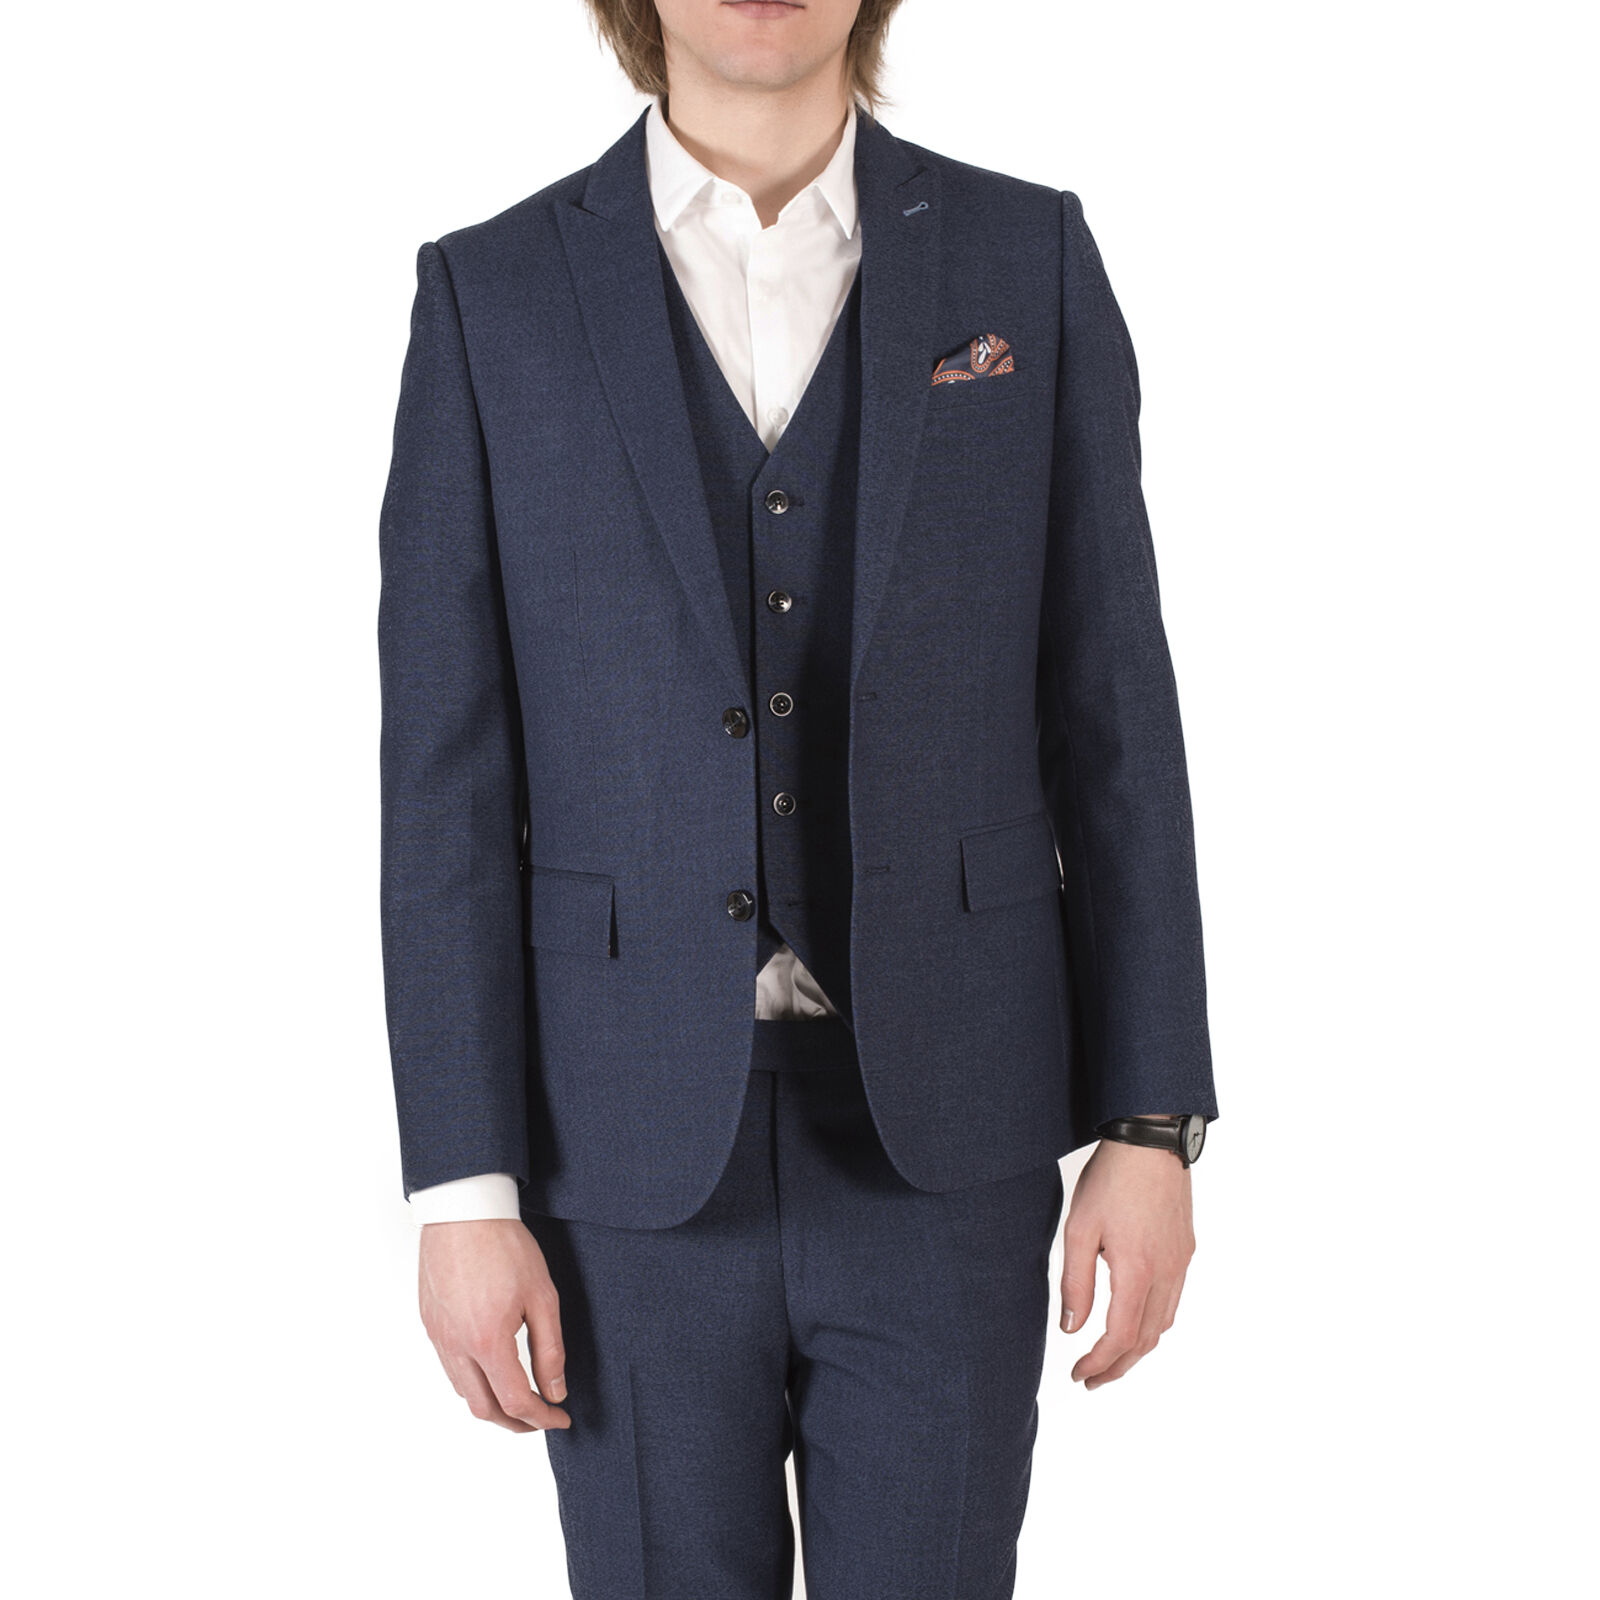 Harry Braun DANDY Three Piece Slim Fit Suit in Blau 540890044